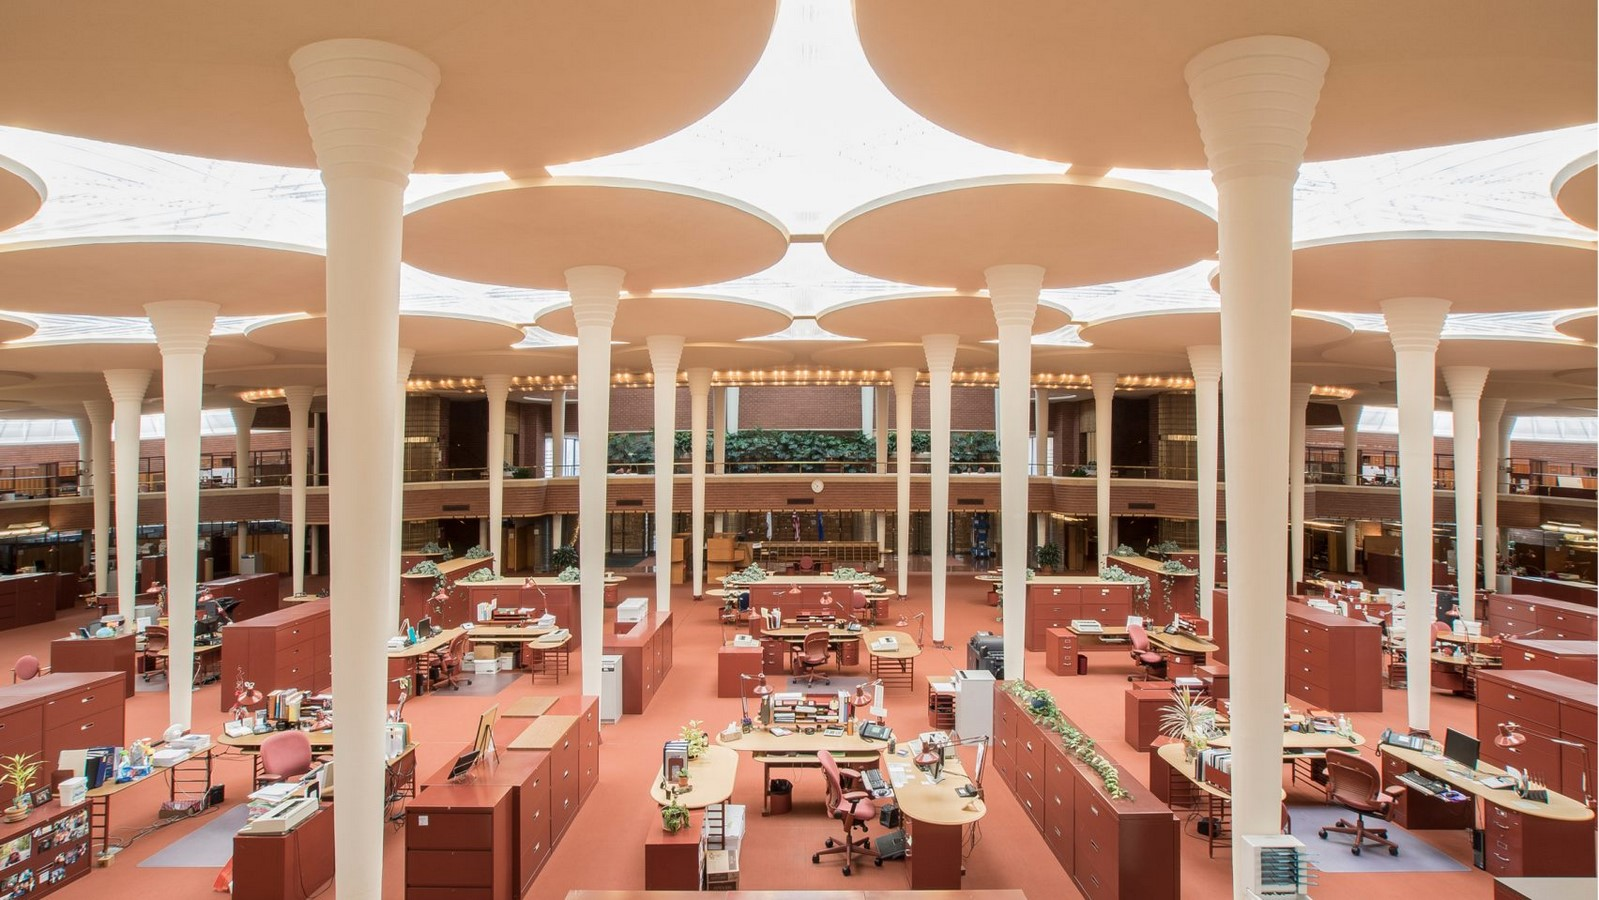 Johnson Wax Headquarters by F.L. Wright: The building with 'Lily pad' Columns - Sheet3